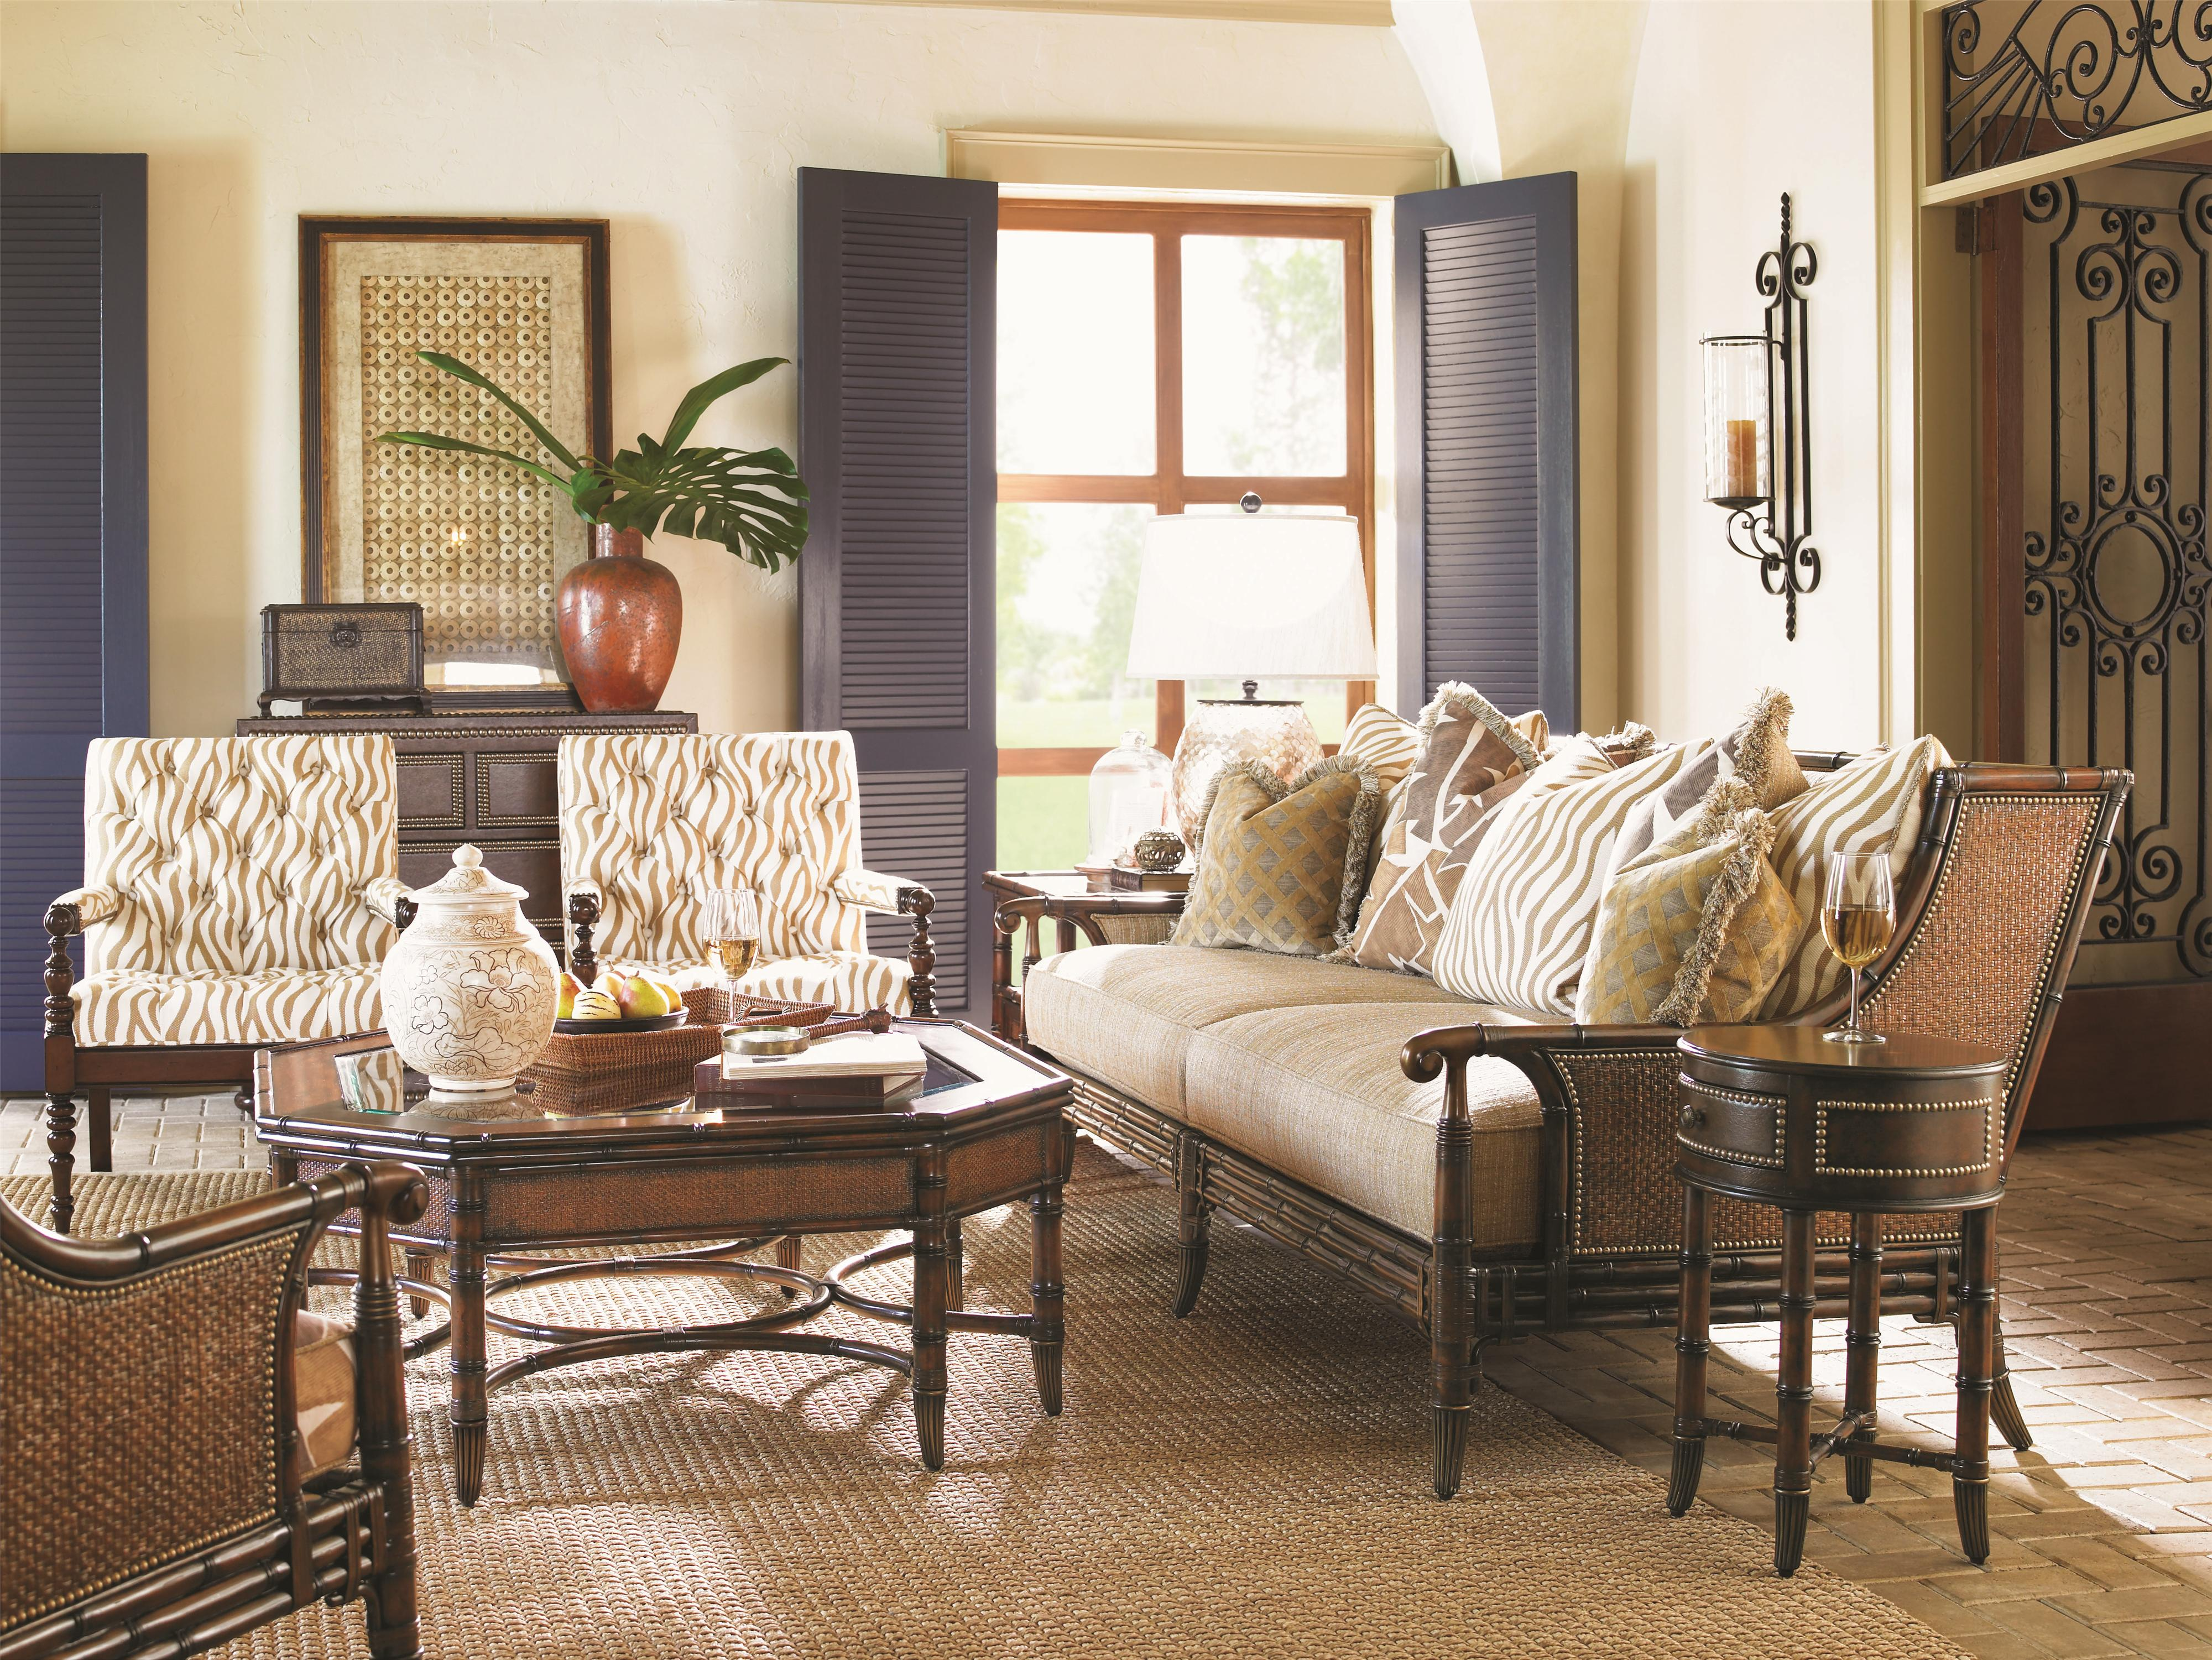 Landara Fabric By Tommy Bahama Home